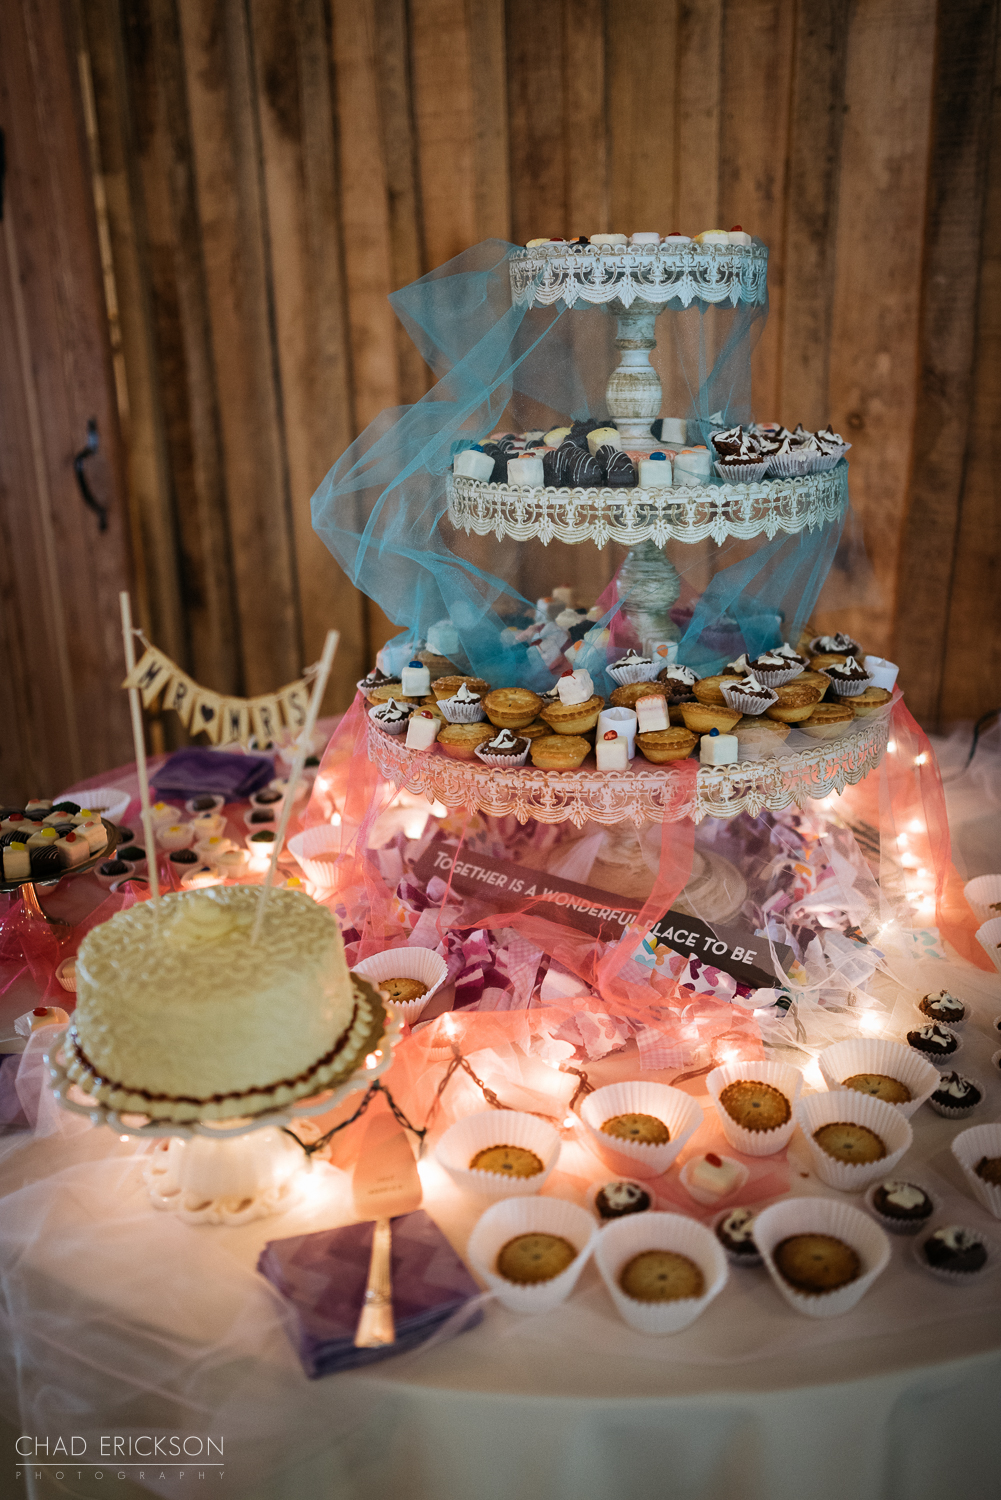 Cake and deserts table